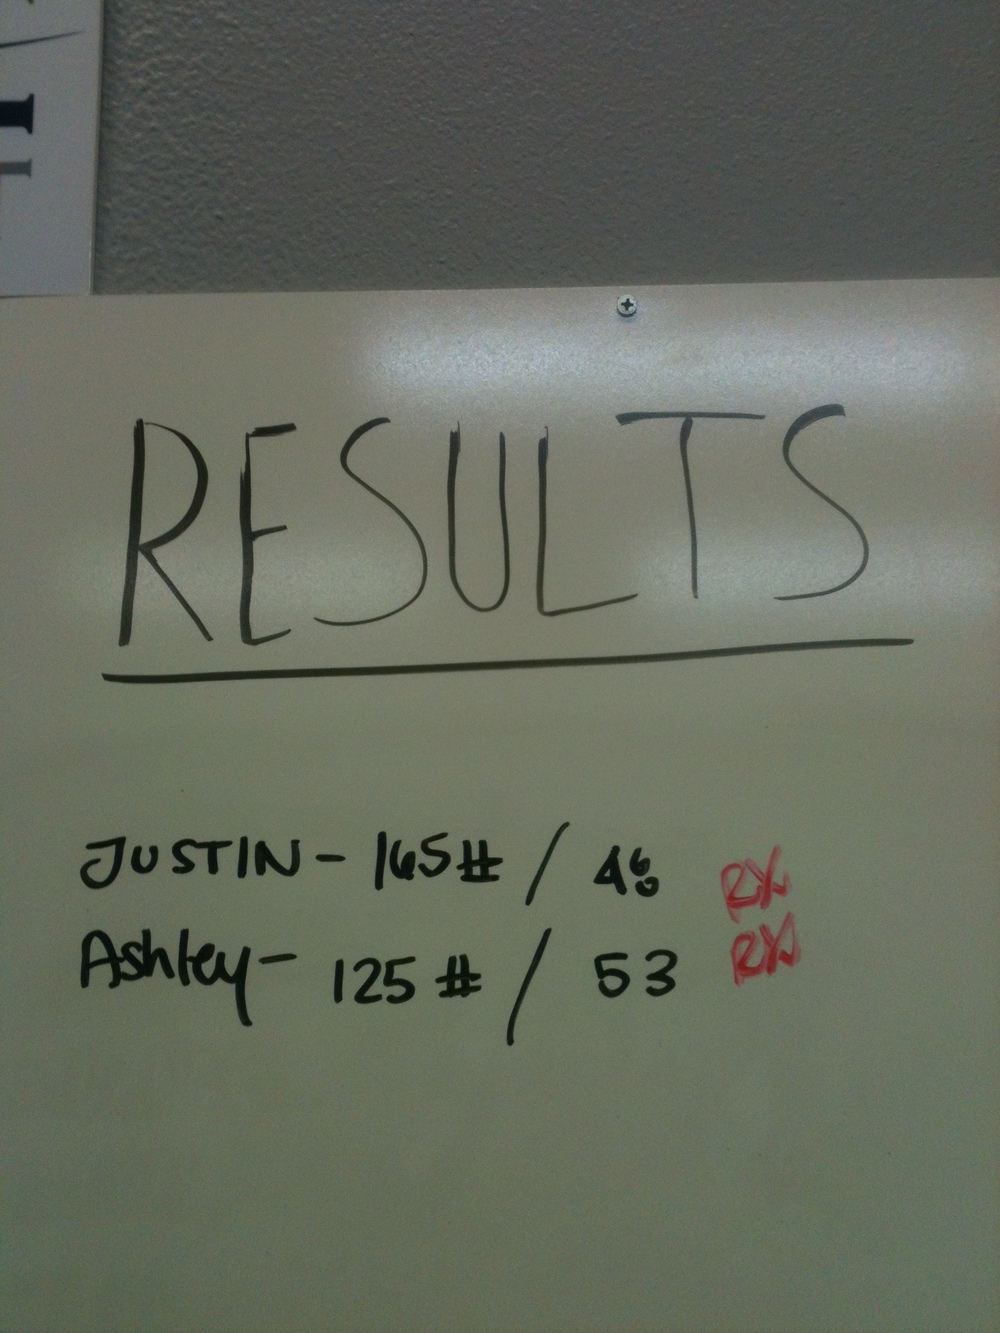 5/16 WOD, Great job Justin and Ashley!